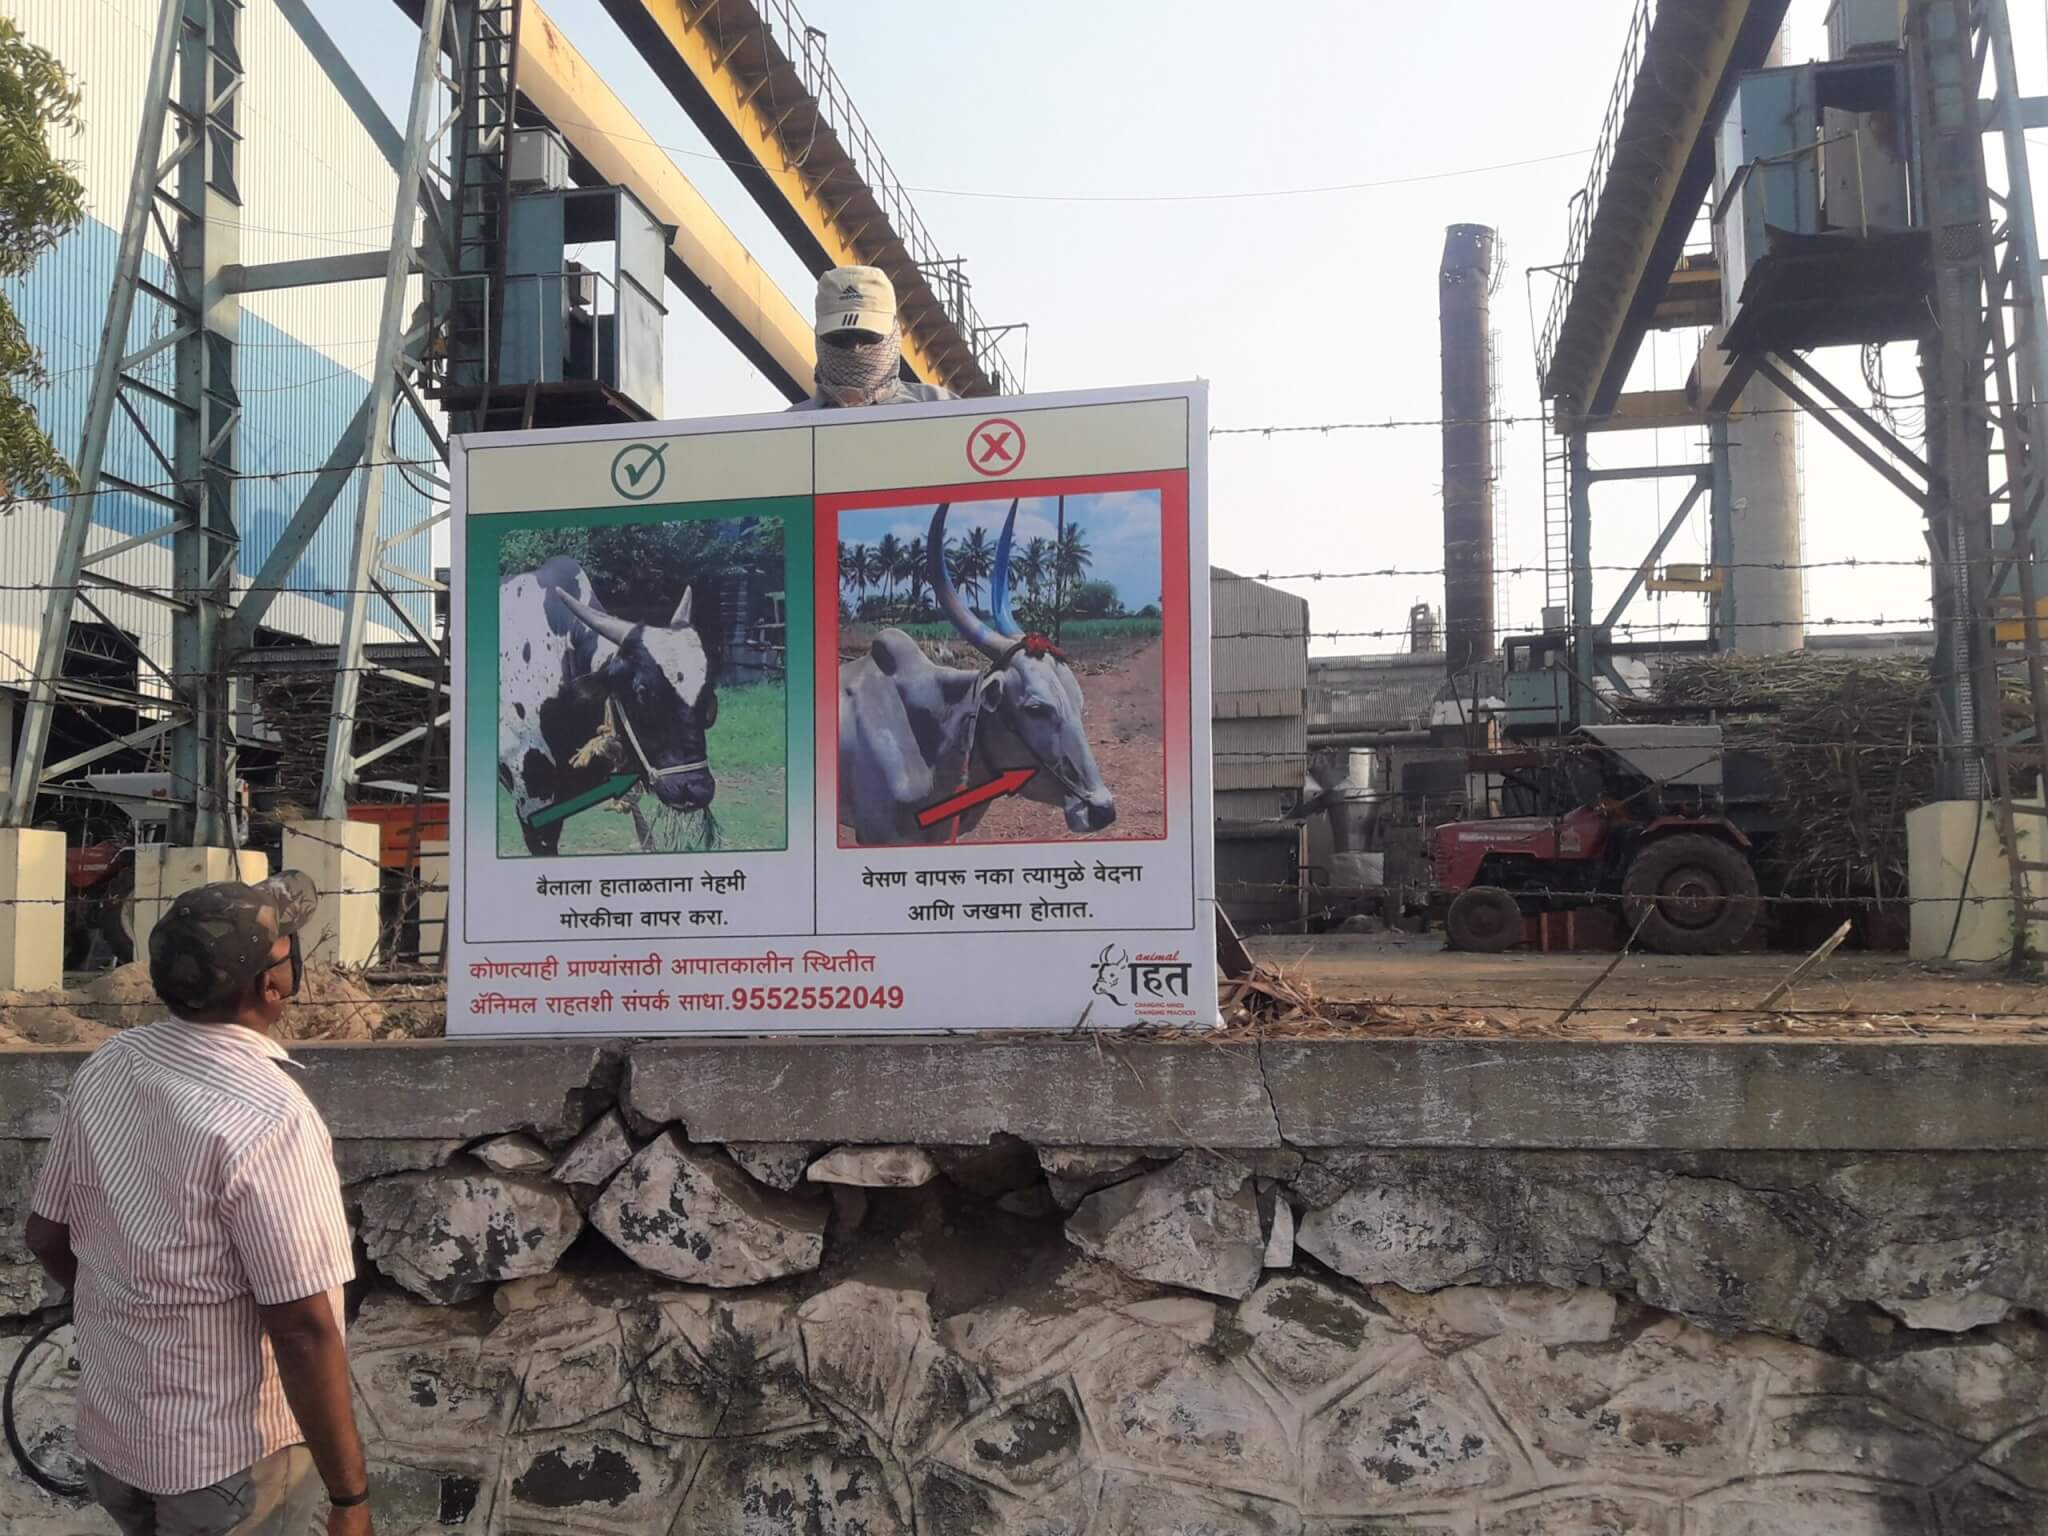 Animal Rahat's signs are displayed at sugar factories, informing bullock owners about the use of illegal devices and proper care.